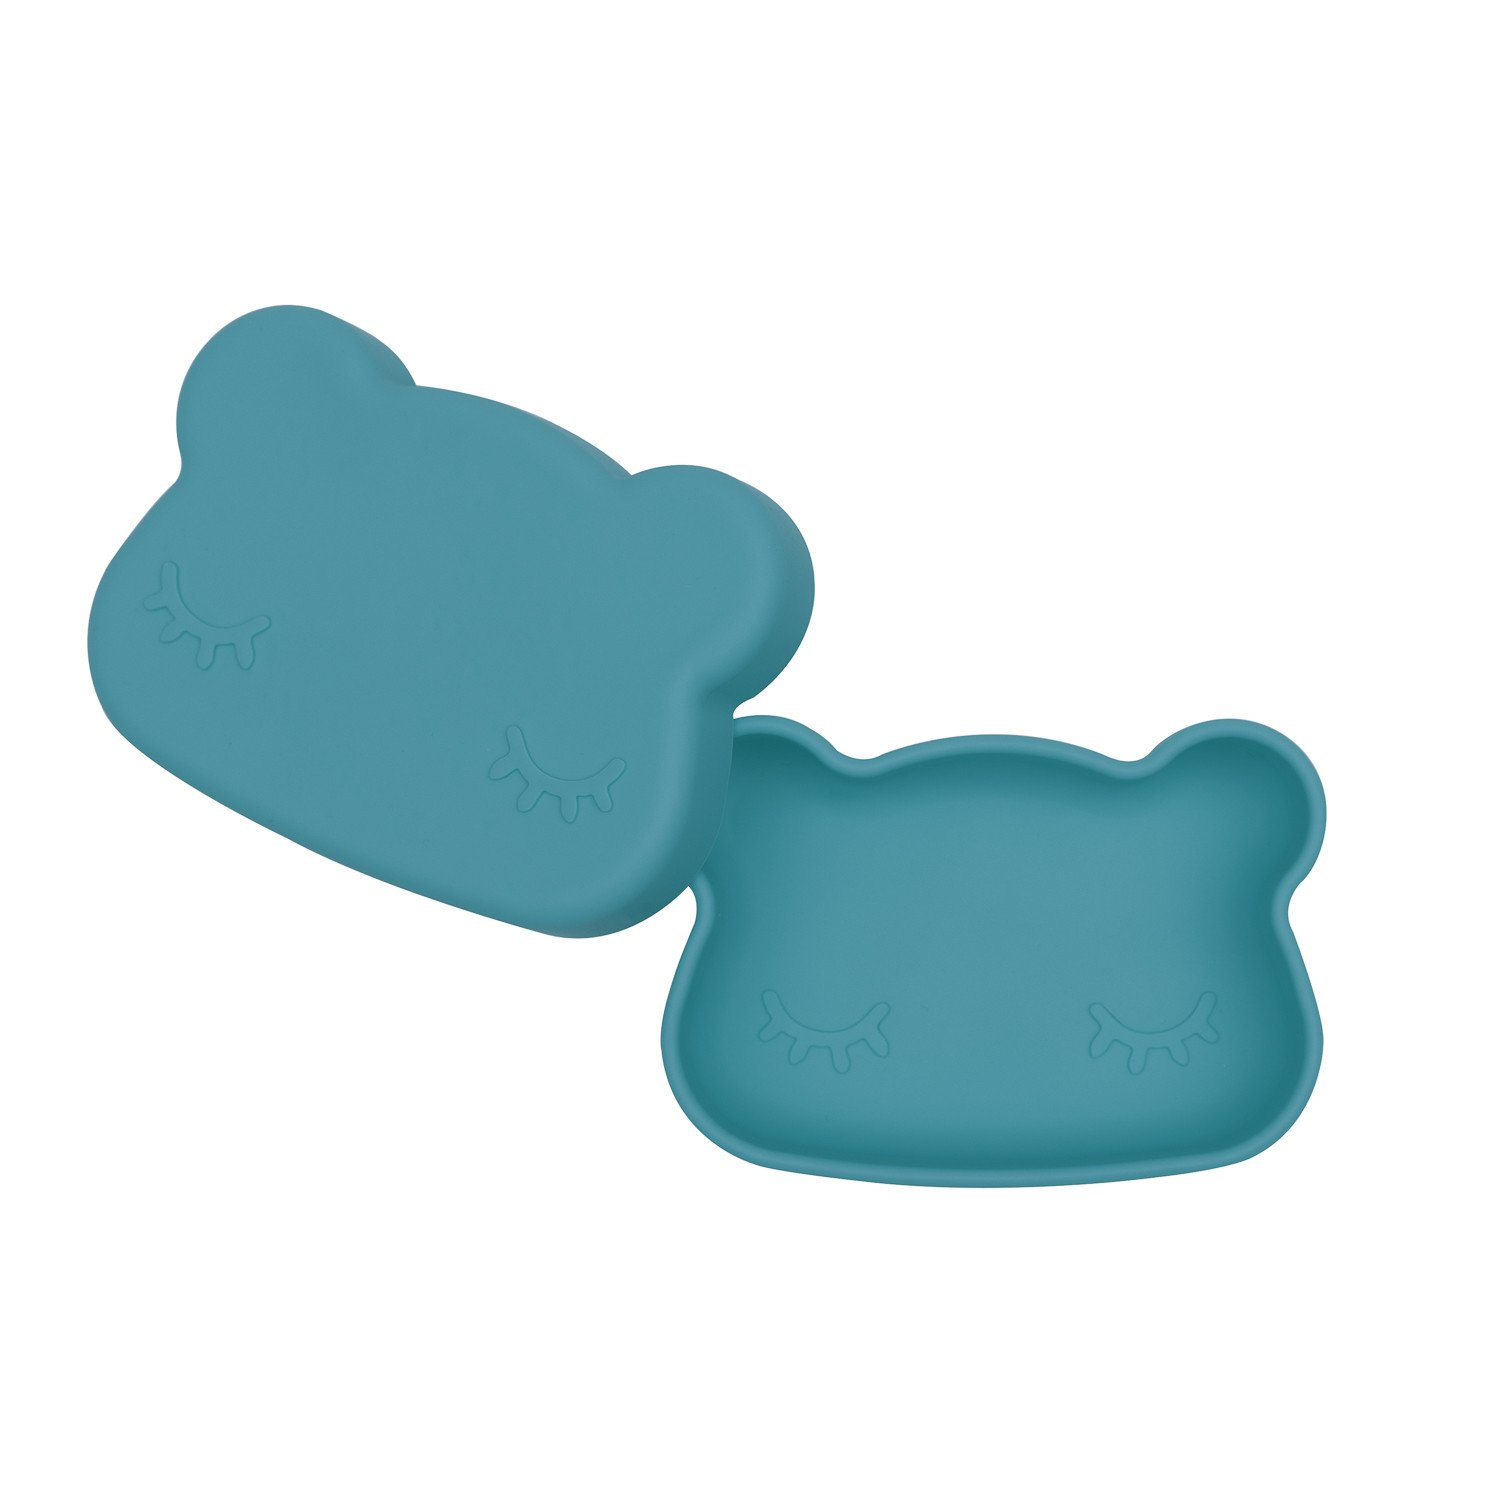 We Might be Tiny - Boîte à goûter en silicone ours